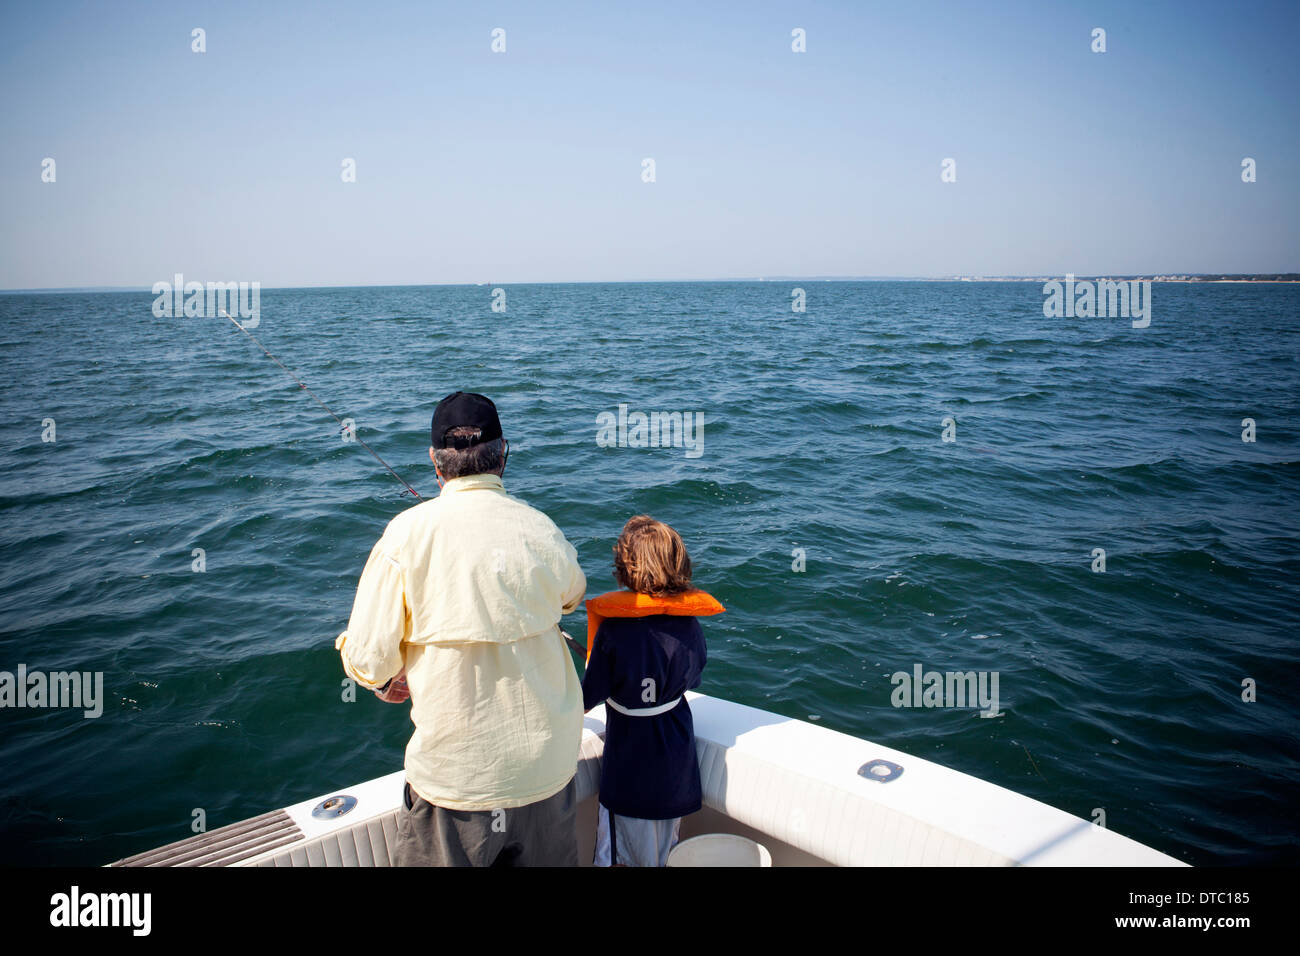 Boy and grandfather fishing from boat, Falmouth, Massachusetts, USA - Stock Image